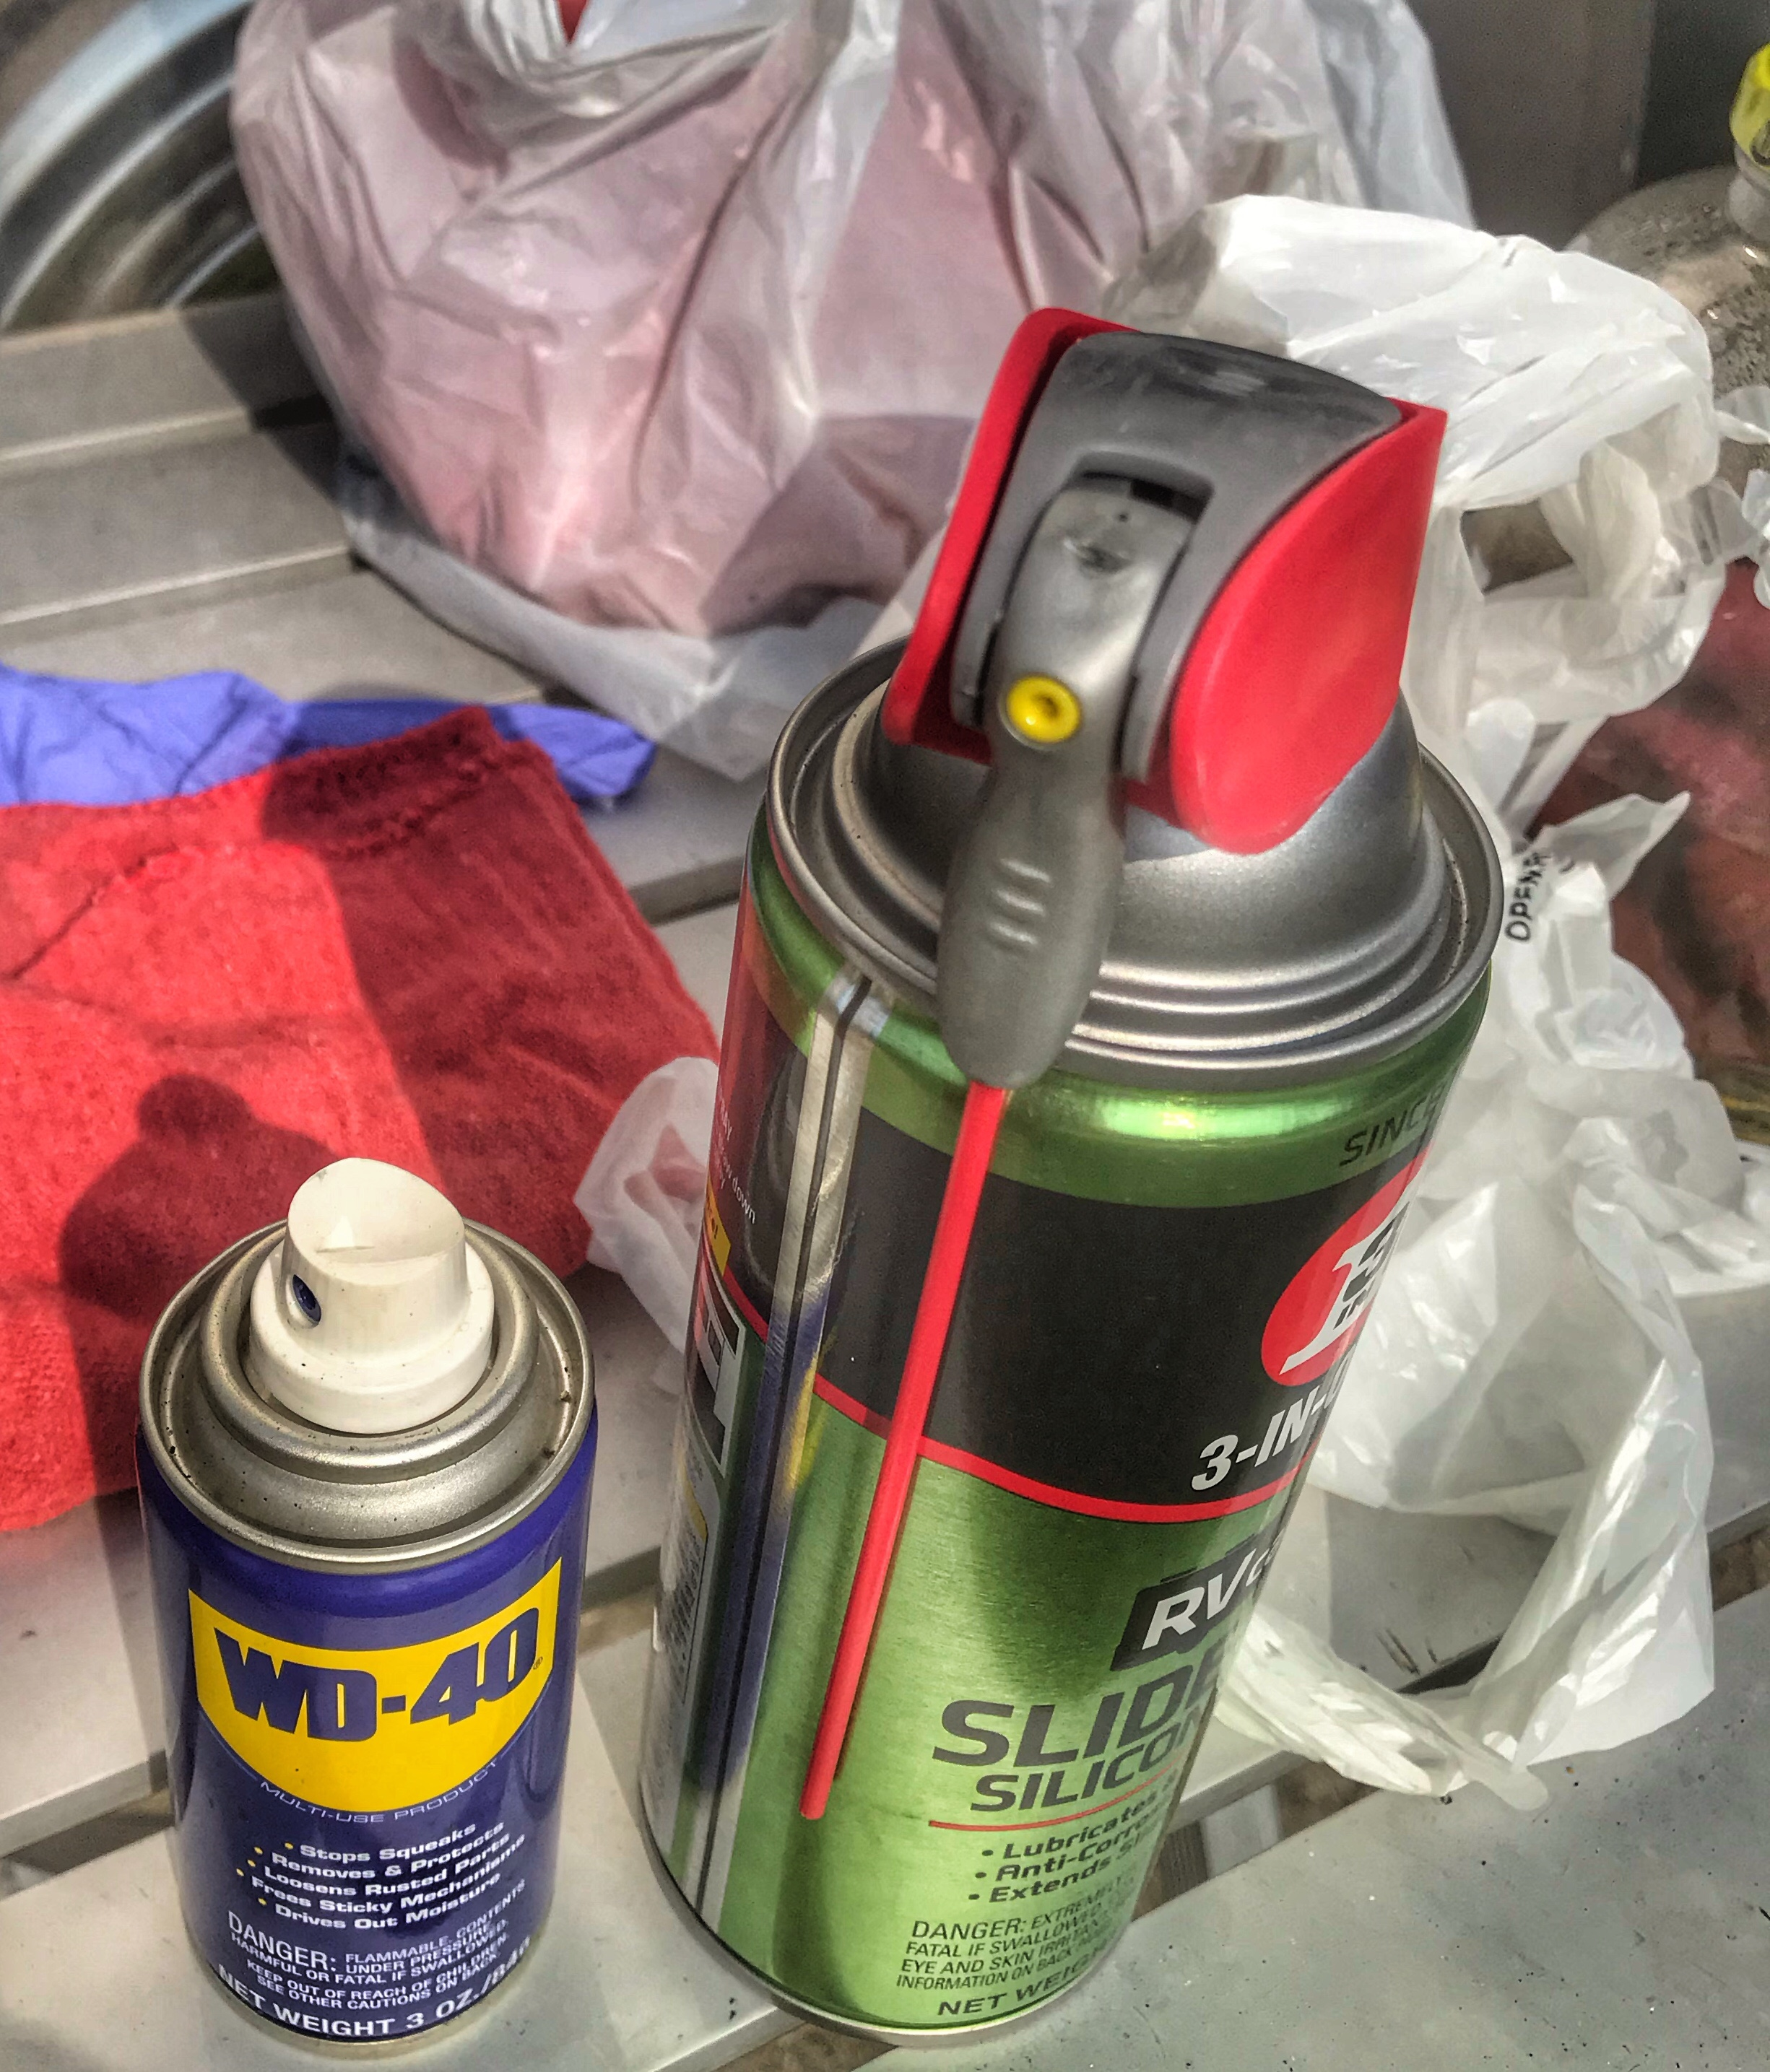 WD 40 & Silicon lubricant.